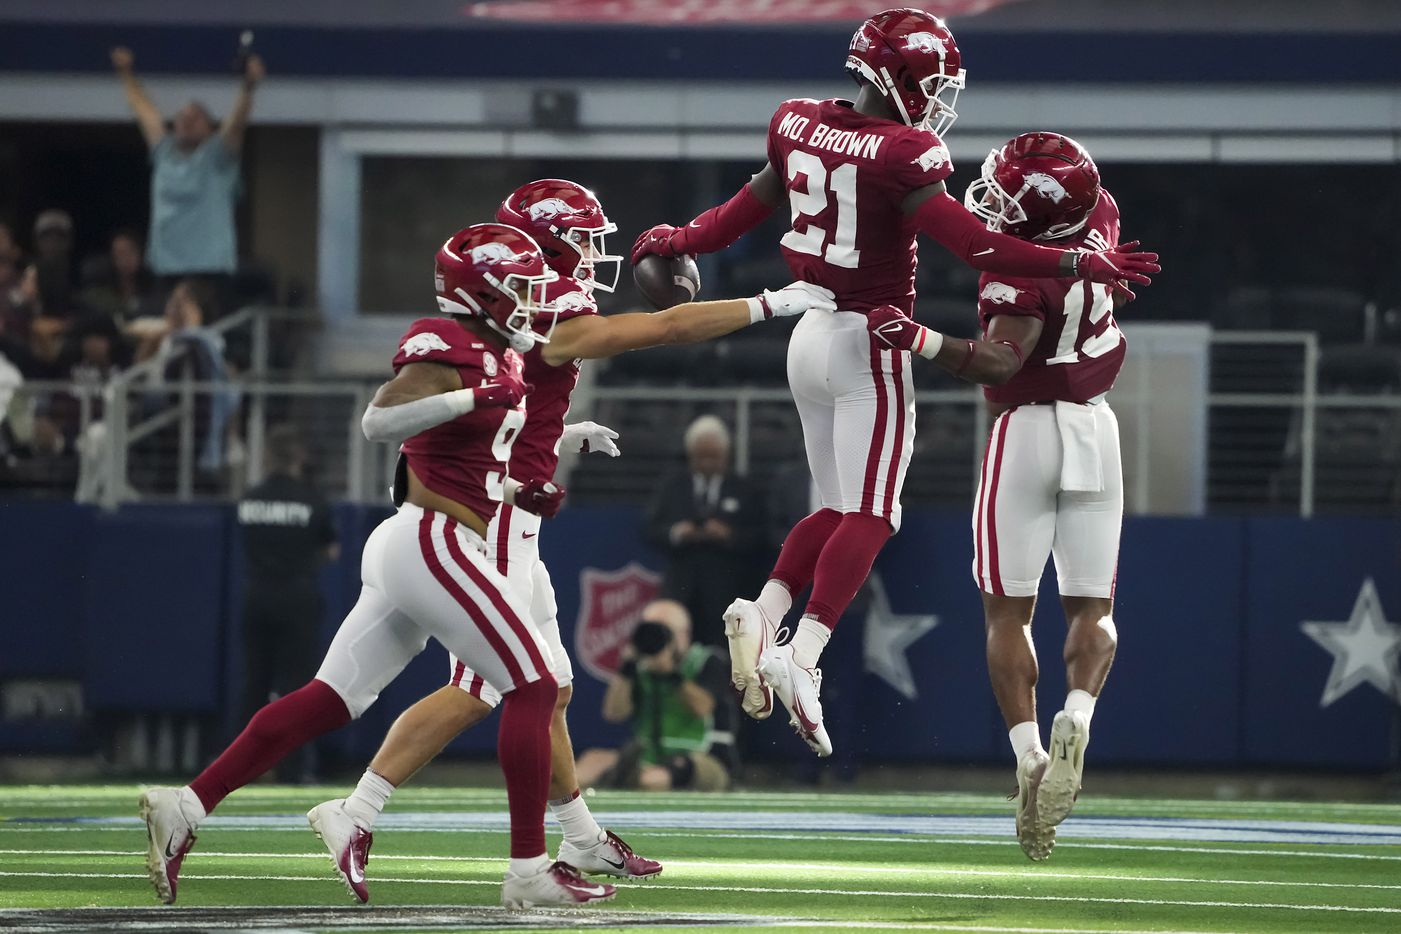 Arkansas defensive back Montaric Brown (21) celebrates after making a diving interception during the second half of an NCAA football game against Texas A&M at AT&T Stadium on Saturday, Sept. 25, 2021, in Arlington. Arkansas won the game 20-10.